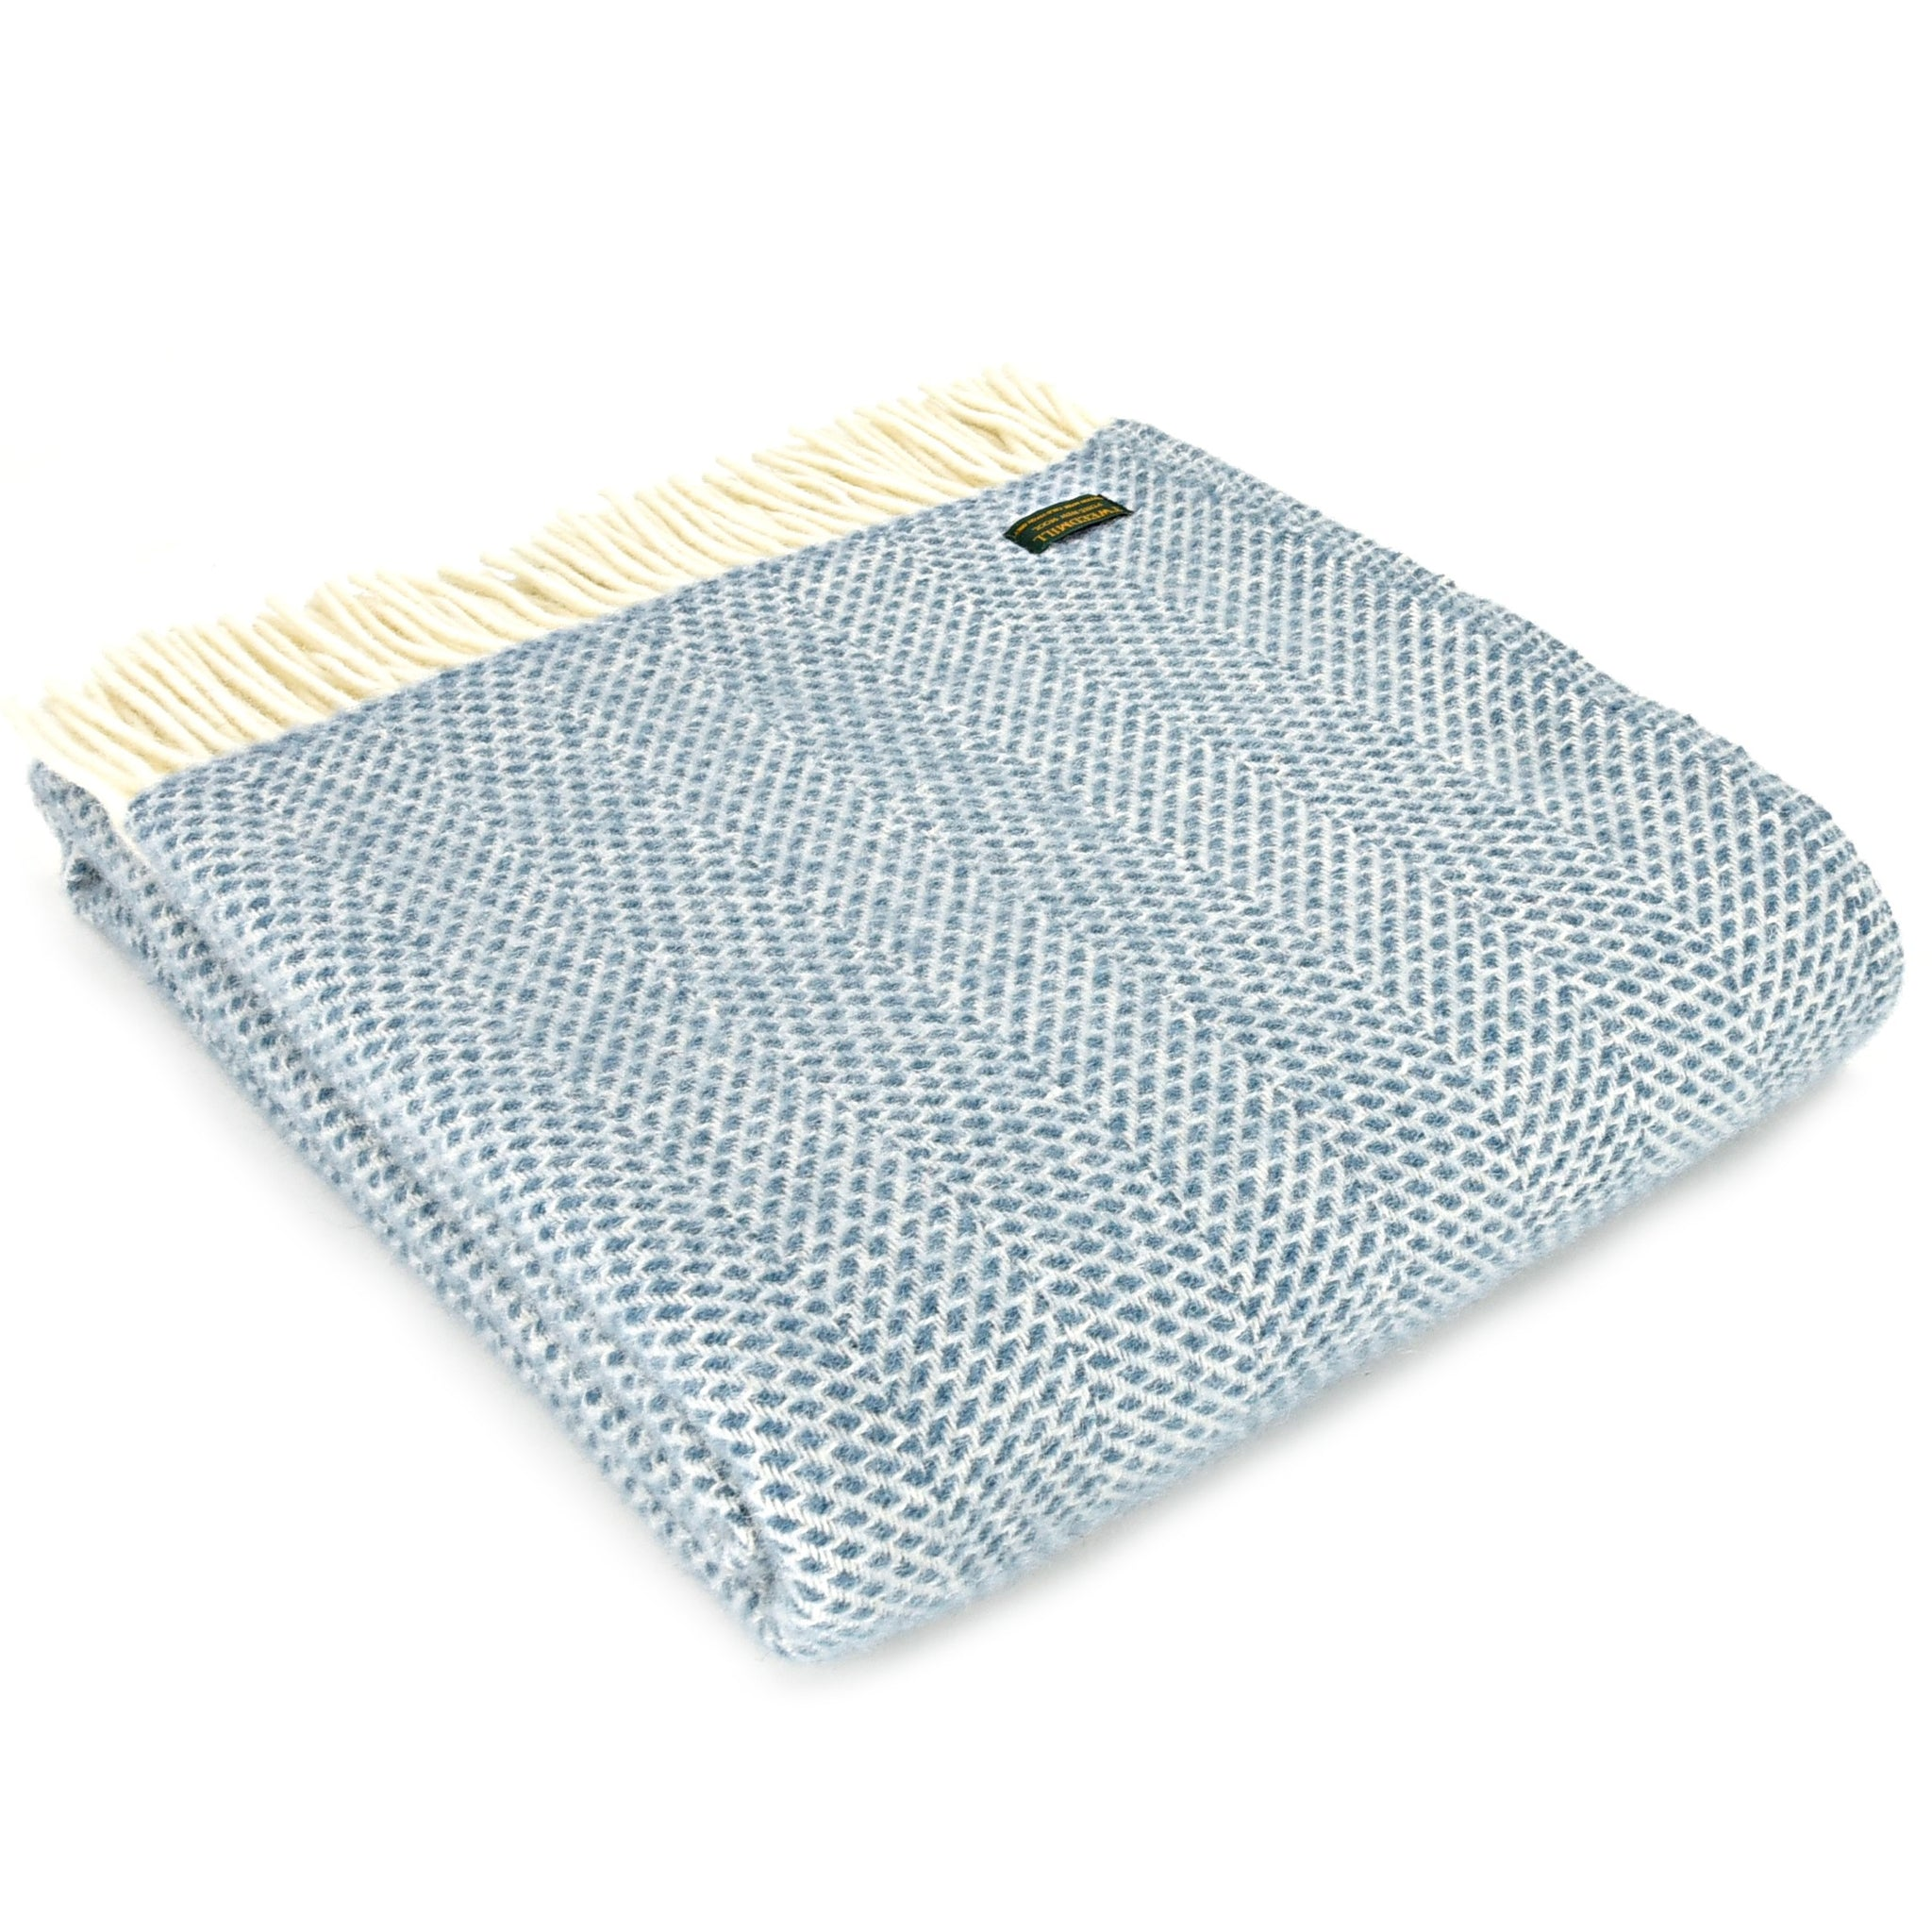 Tweedmill Petrol Blue Beehive Pure New Wool Blanket Throw